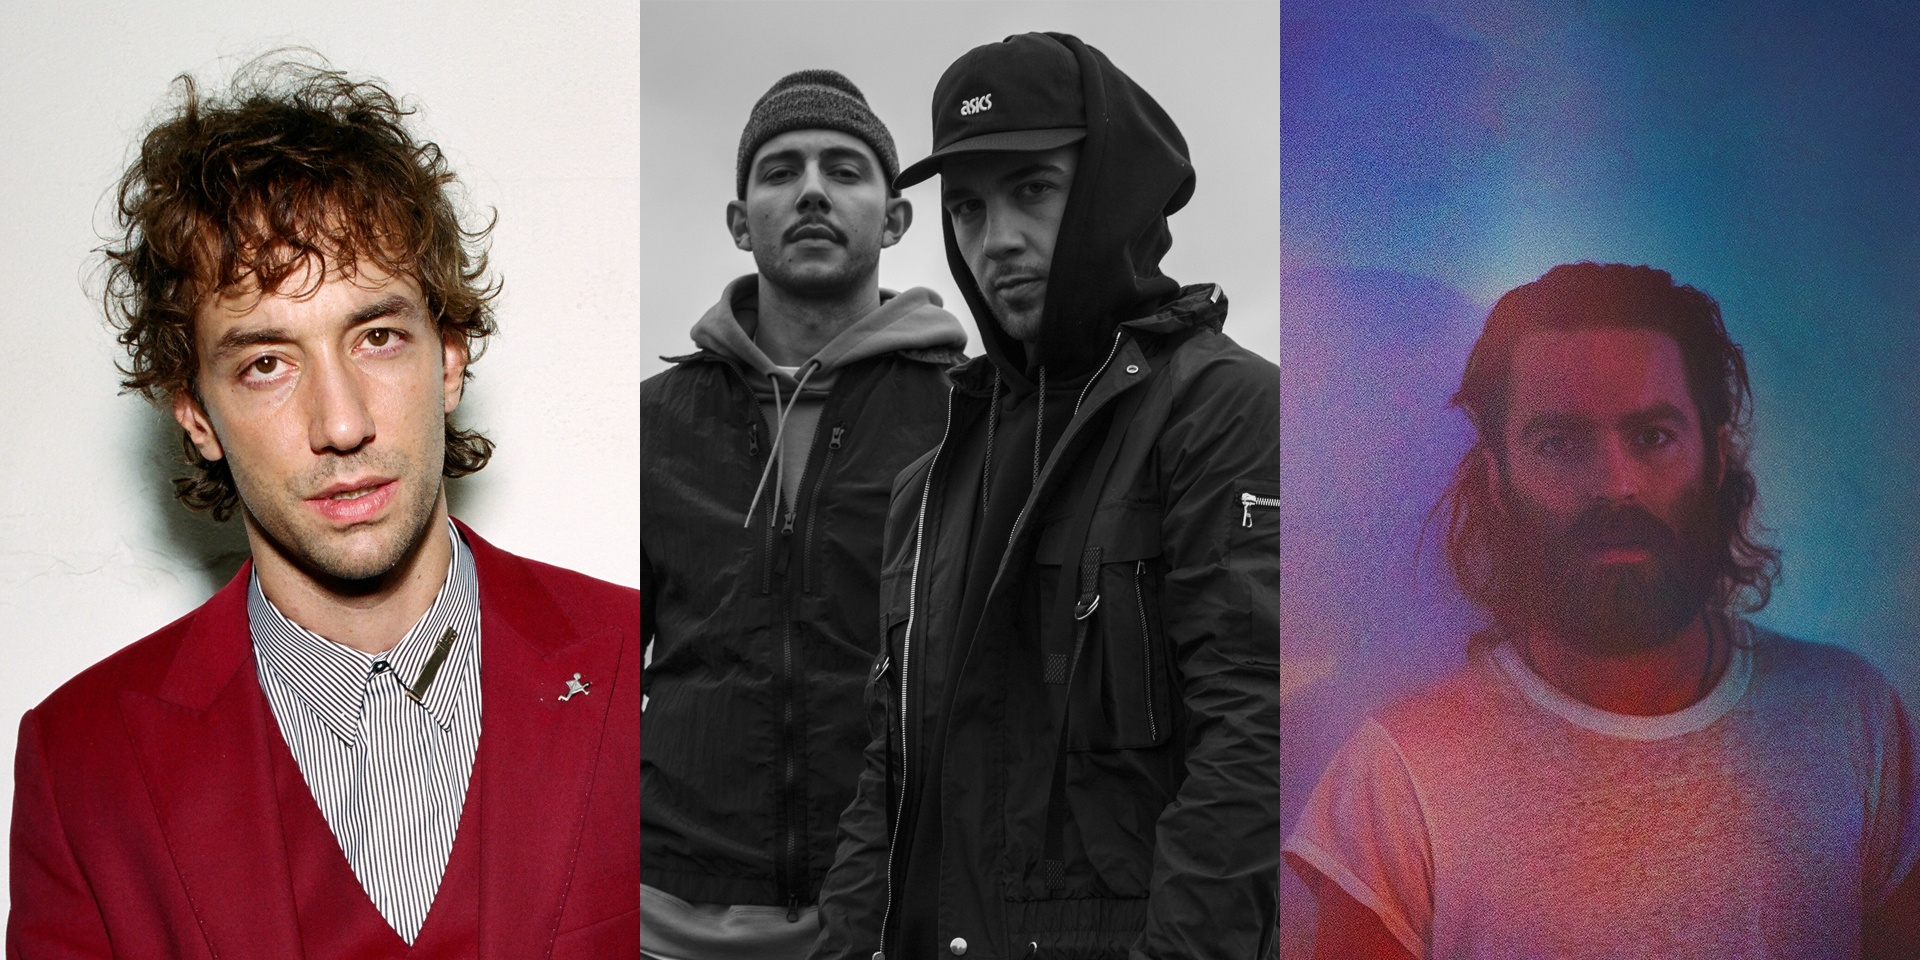 We The Fest adds Majid Jordan, Nick Murphy (fka Chet Faker) and Albert Hammond Jr. to lineup